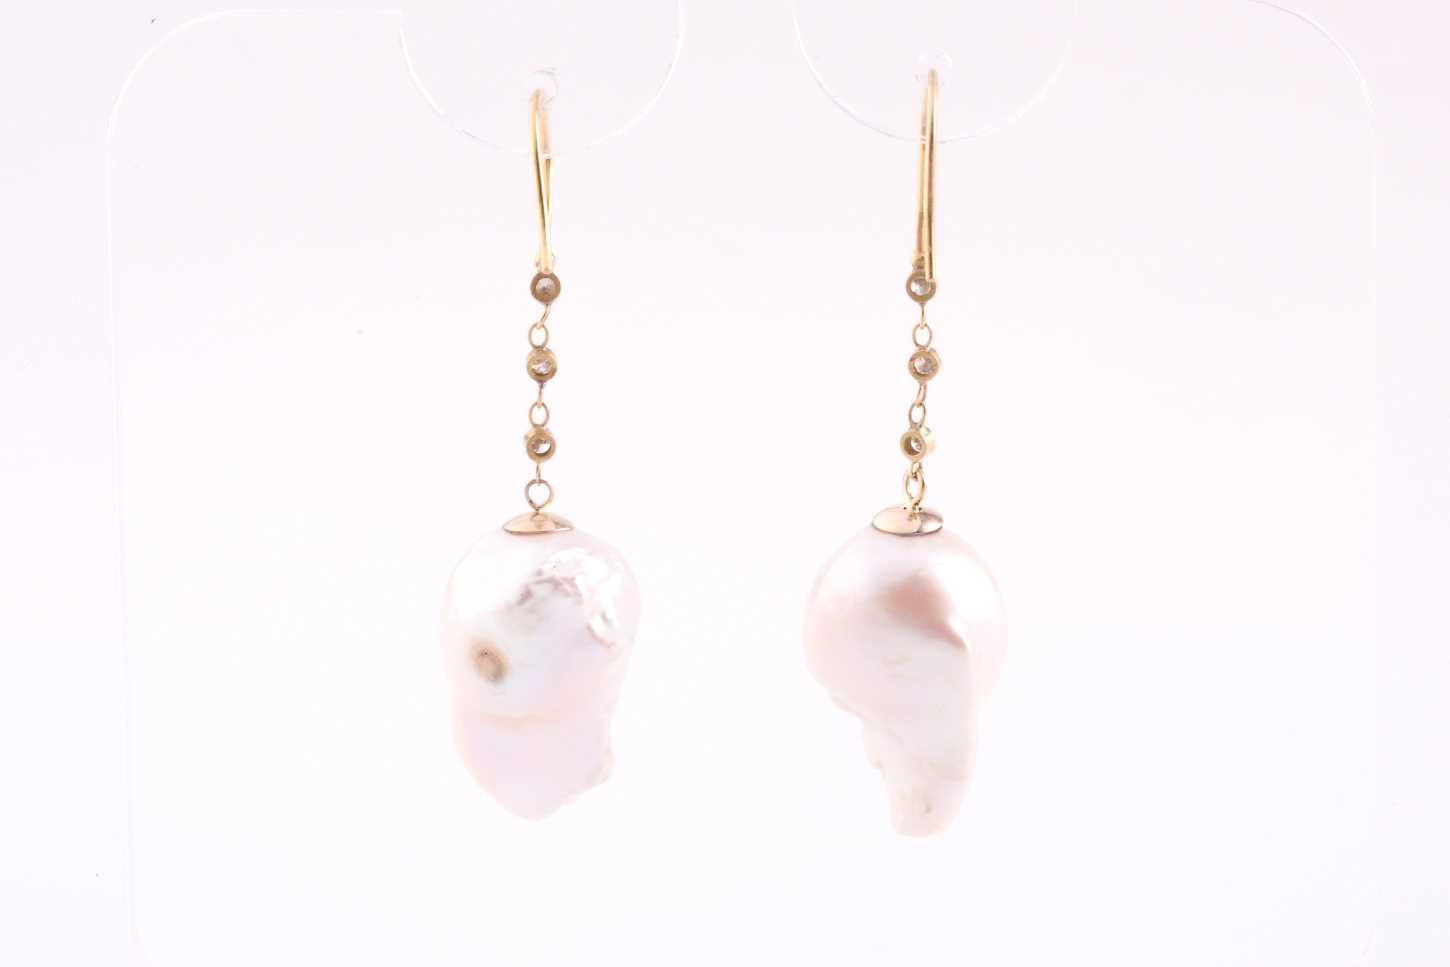 A pair of Baroque pearl and diamond drop earrings, the pearls drill mounted beneath a chain of three